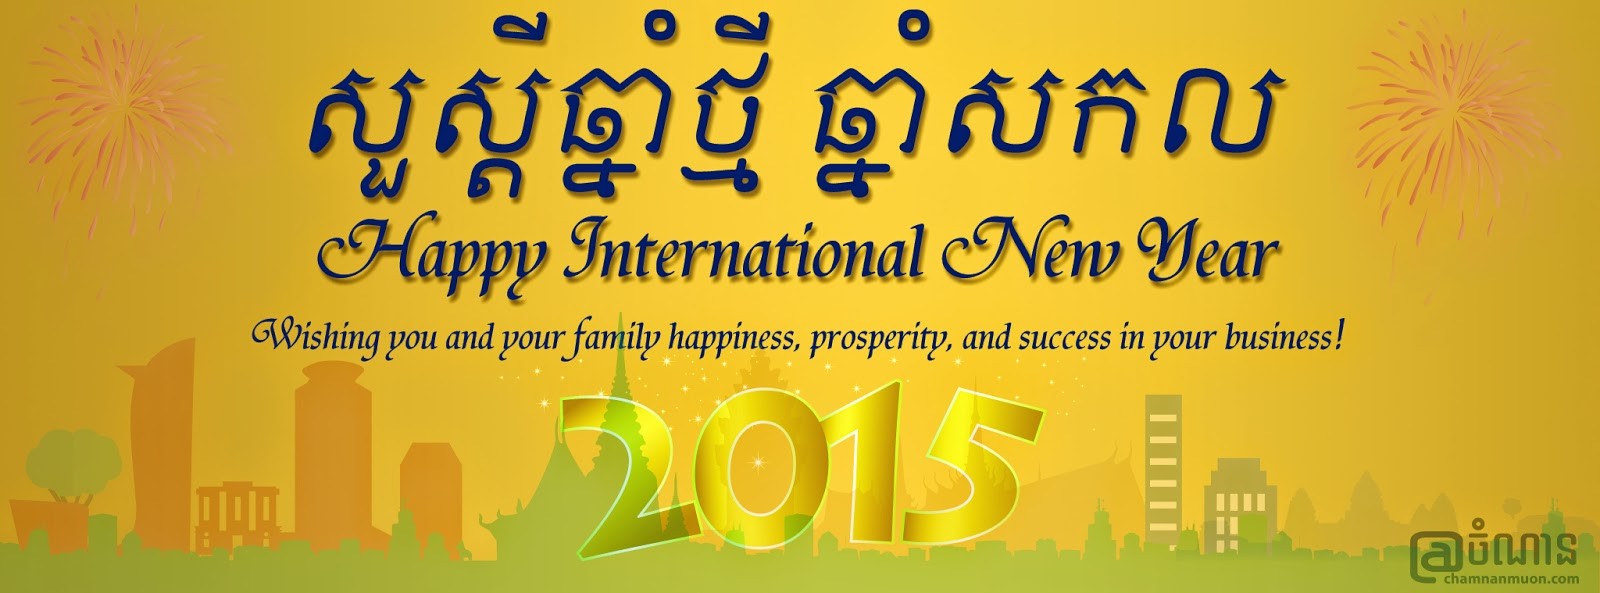 Happy New Year 2015 - Khmer!